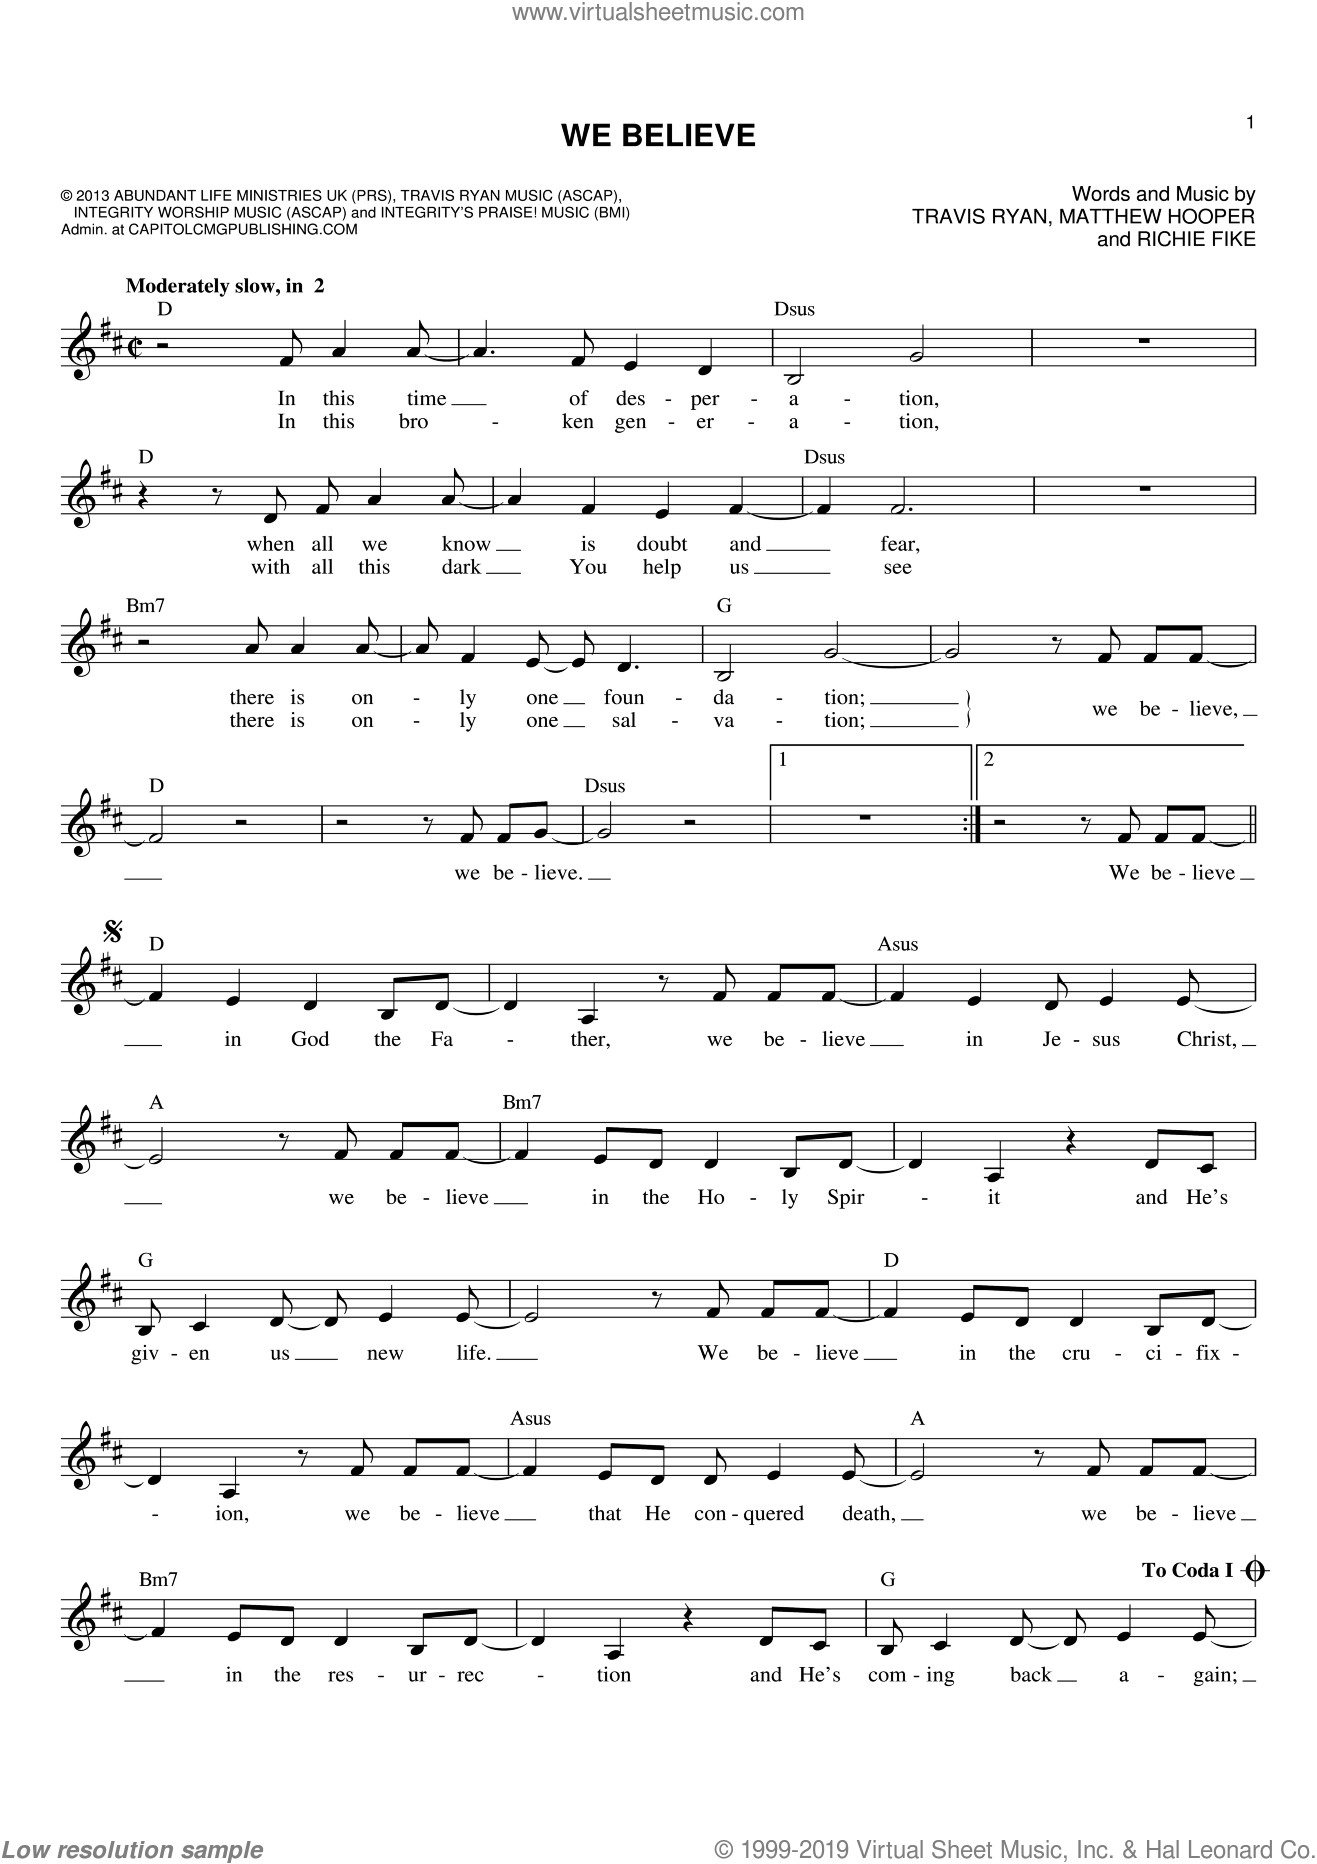 We Believe sheet music for voice and other instruments (fake book) by Newsboys, Matthew Hooper, Richie Fike and Travis Ryan, intermediate skill level